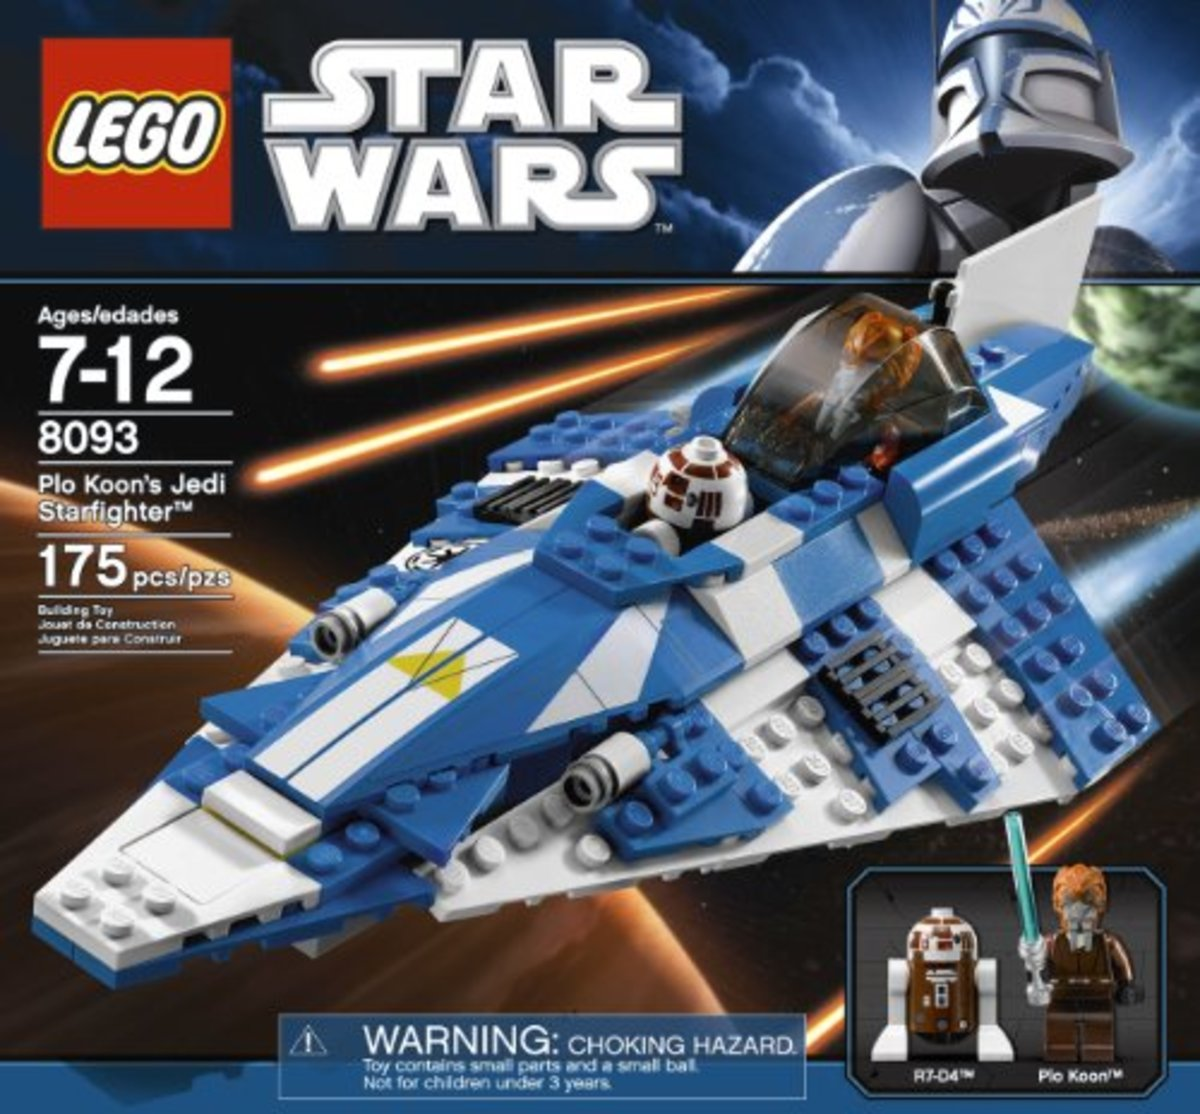 LEGO Star Wars Plo Koon's Starfighter 8093 Box